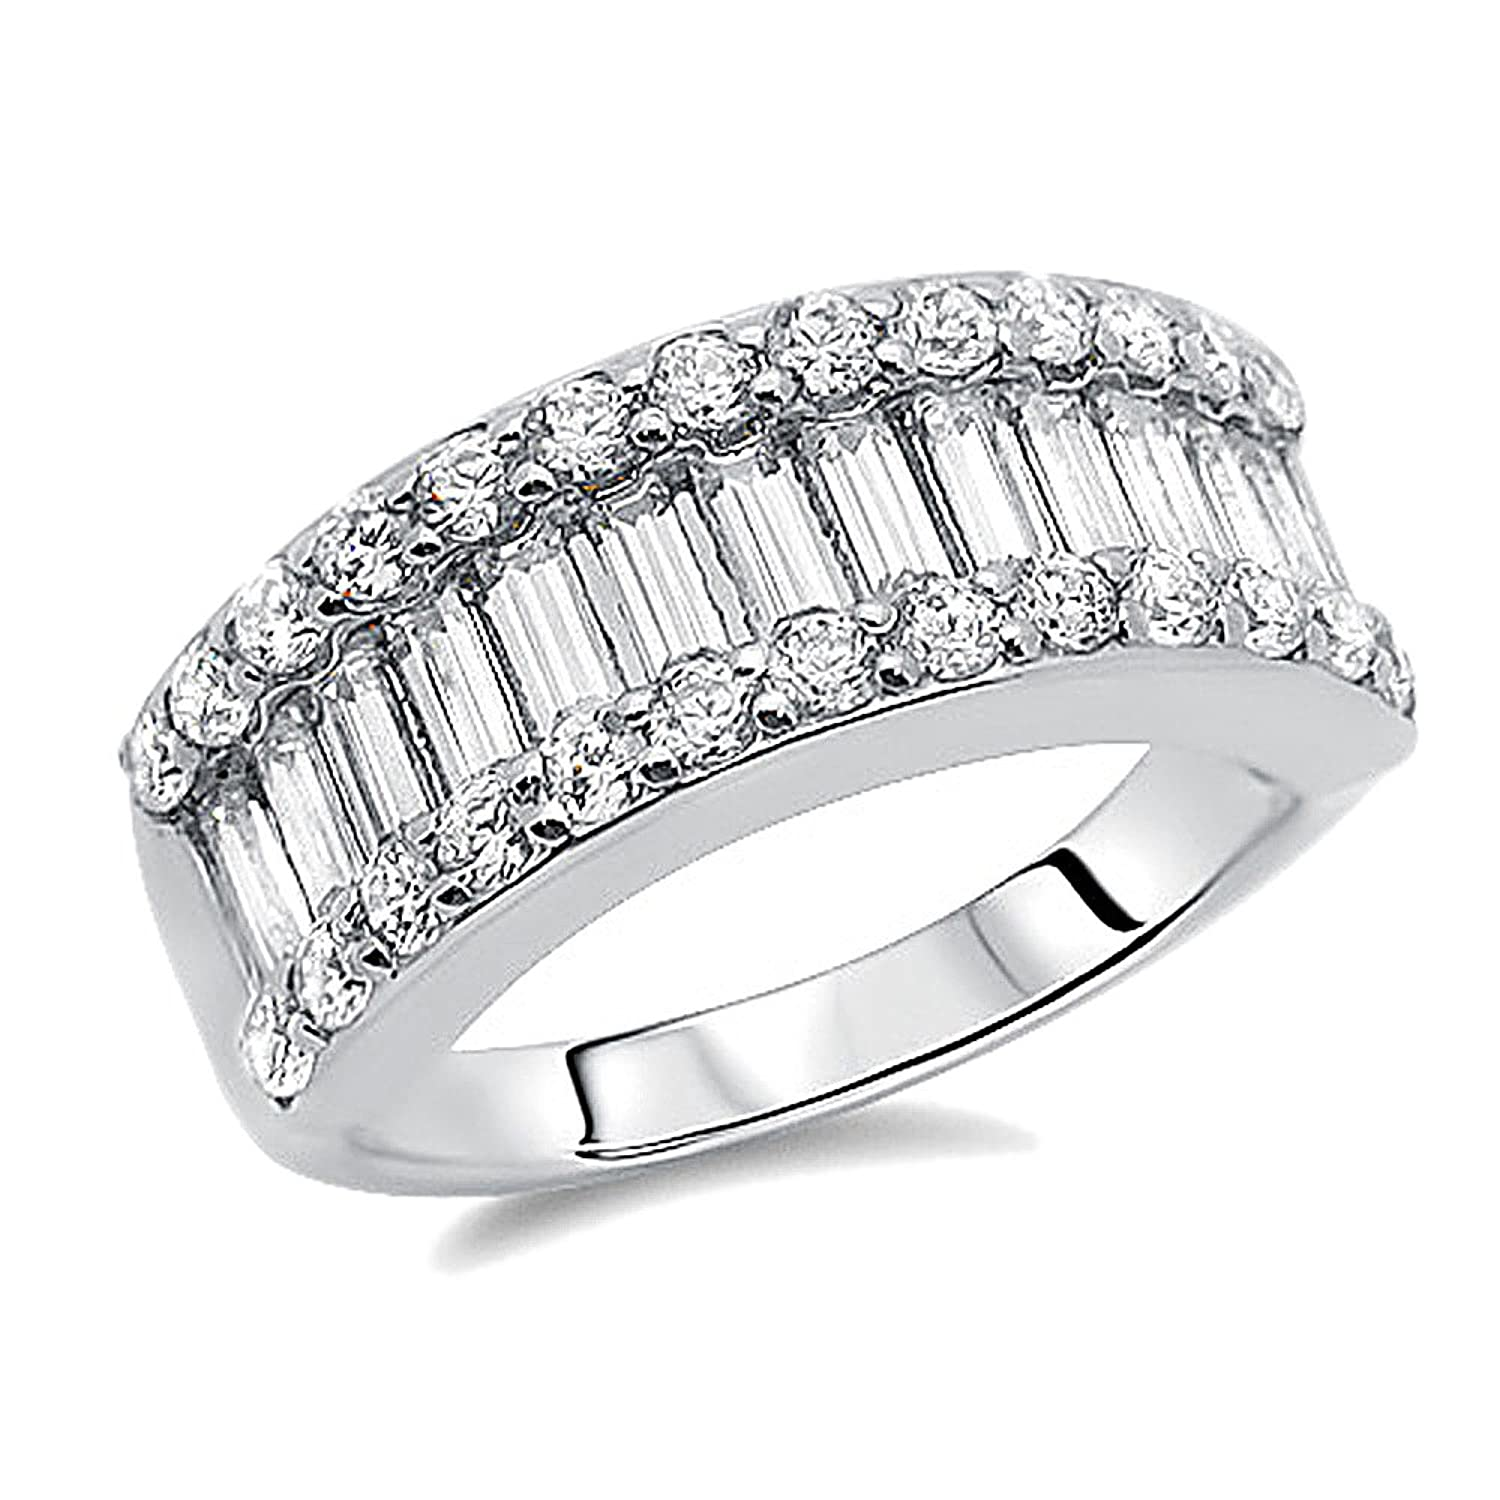 amazon rhodium rings cz anniversary wedding band platinum plated round sterling diamond baguette bands doubleaccent simulated com dp silver jewelry ring